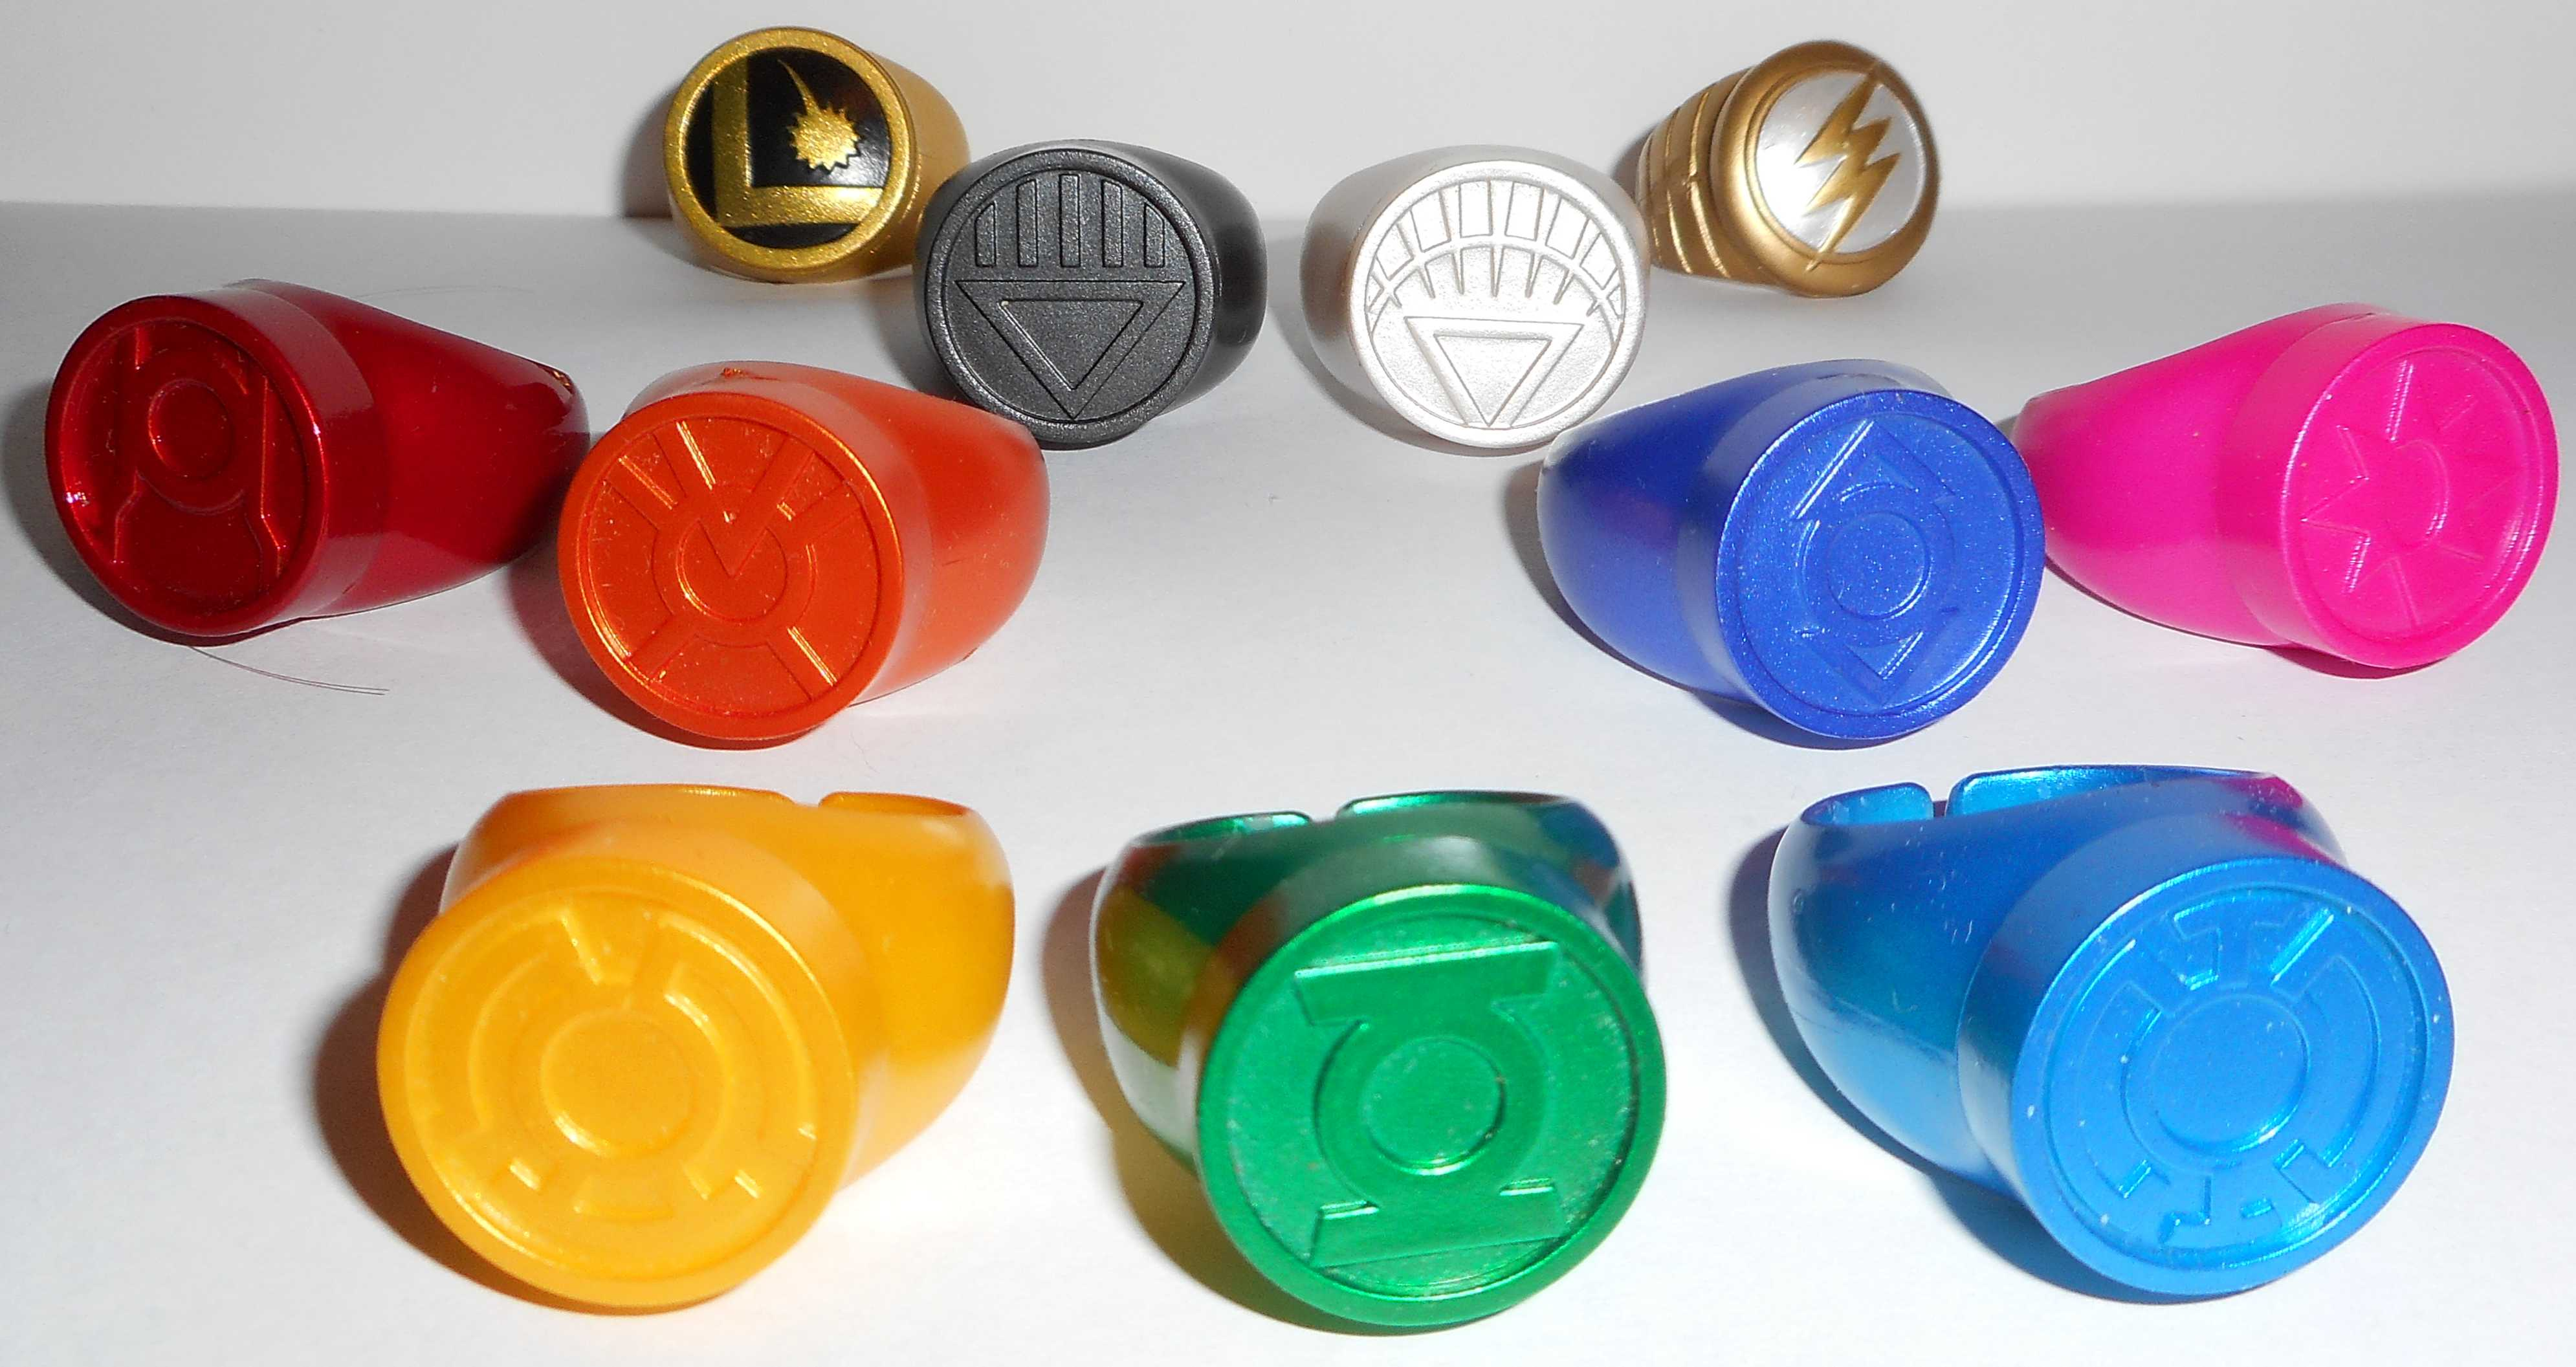 Blue Lantern Ring Toy